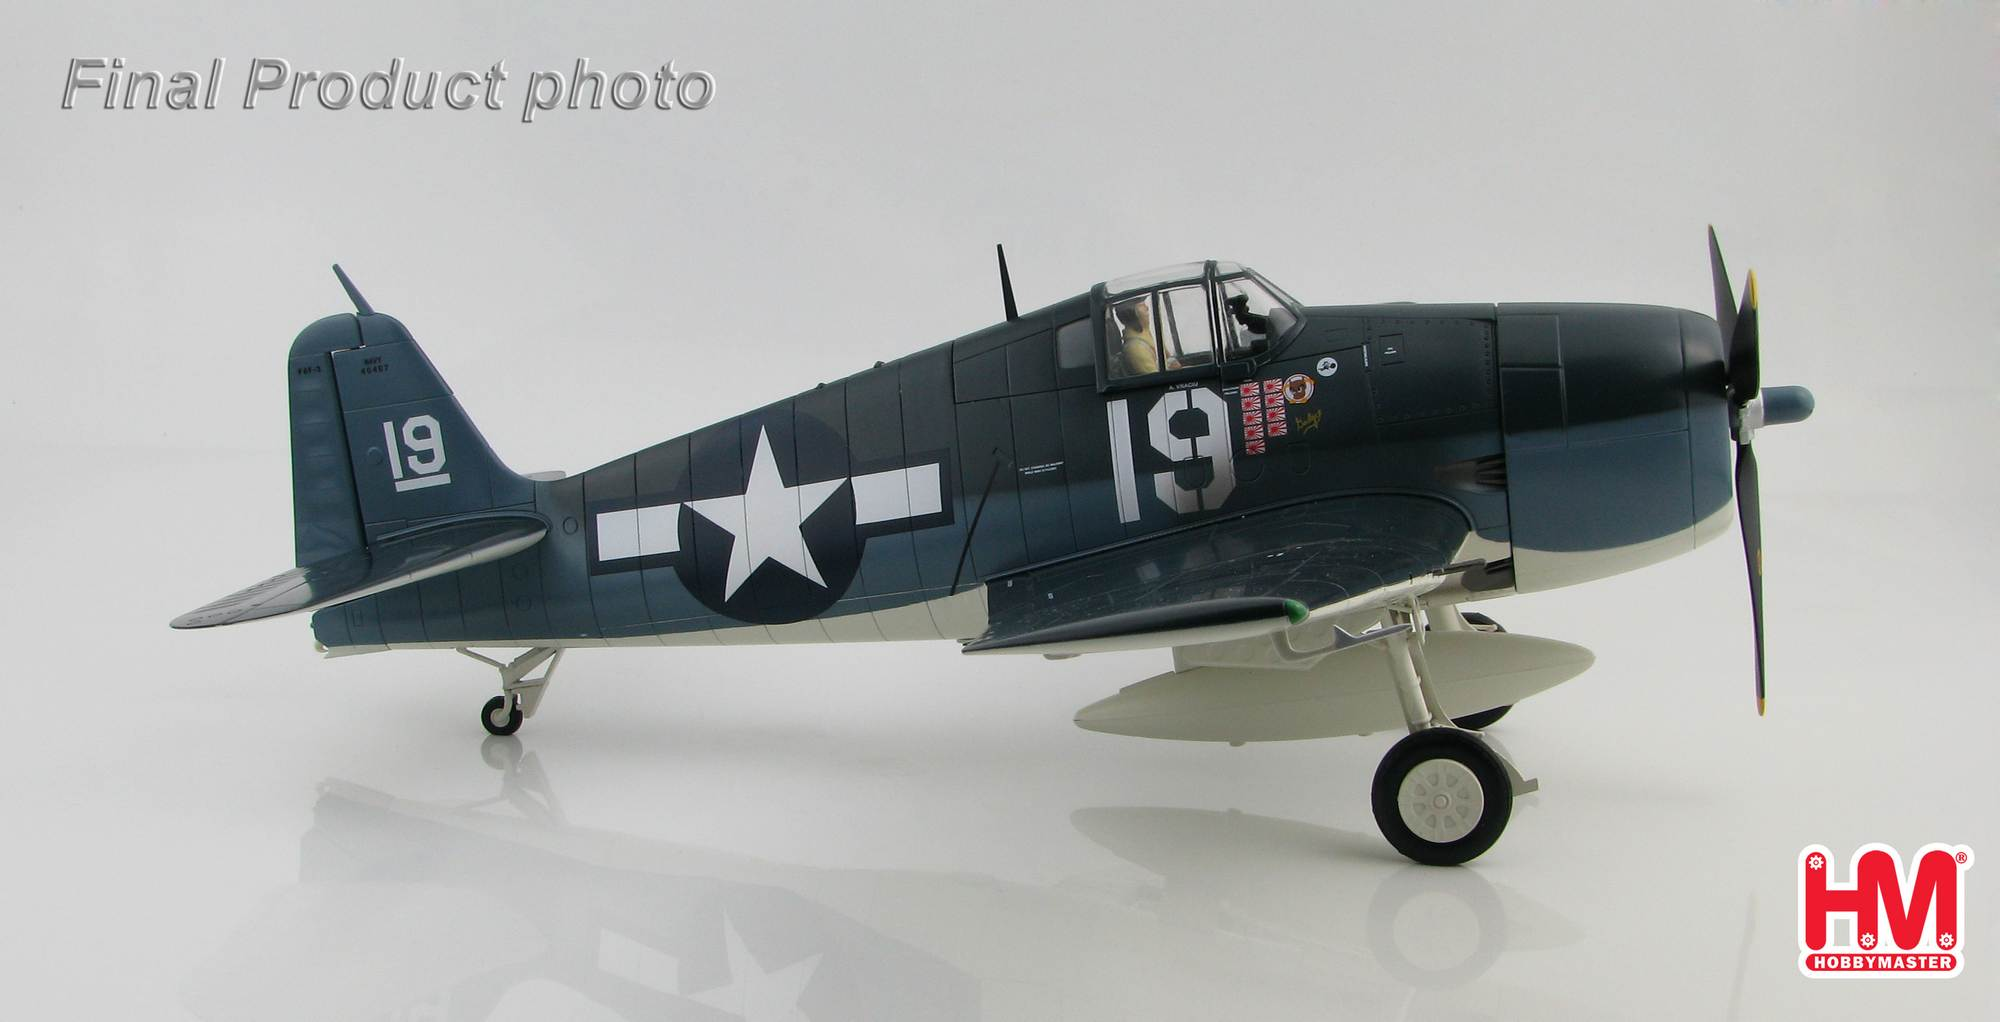 Grumman F6F-3 Hellcat, White 19 of VF-6, Alex Vraciu, USS Intrepid, February, 1944 (1:32)